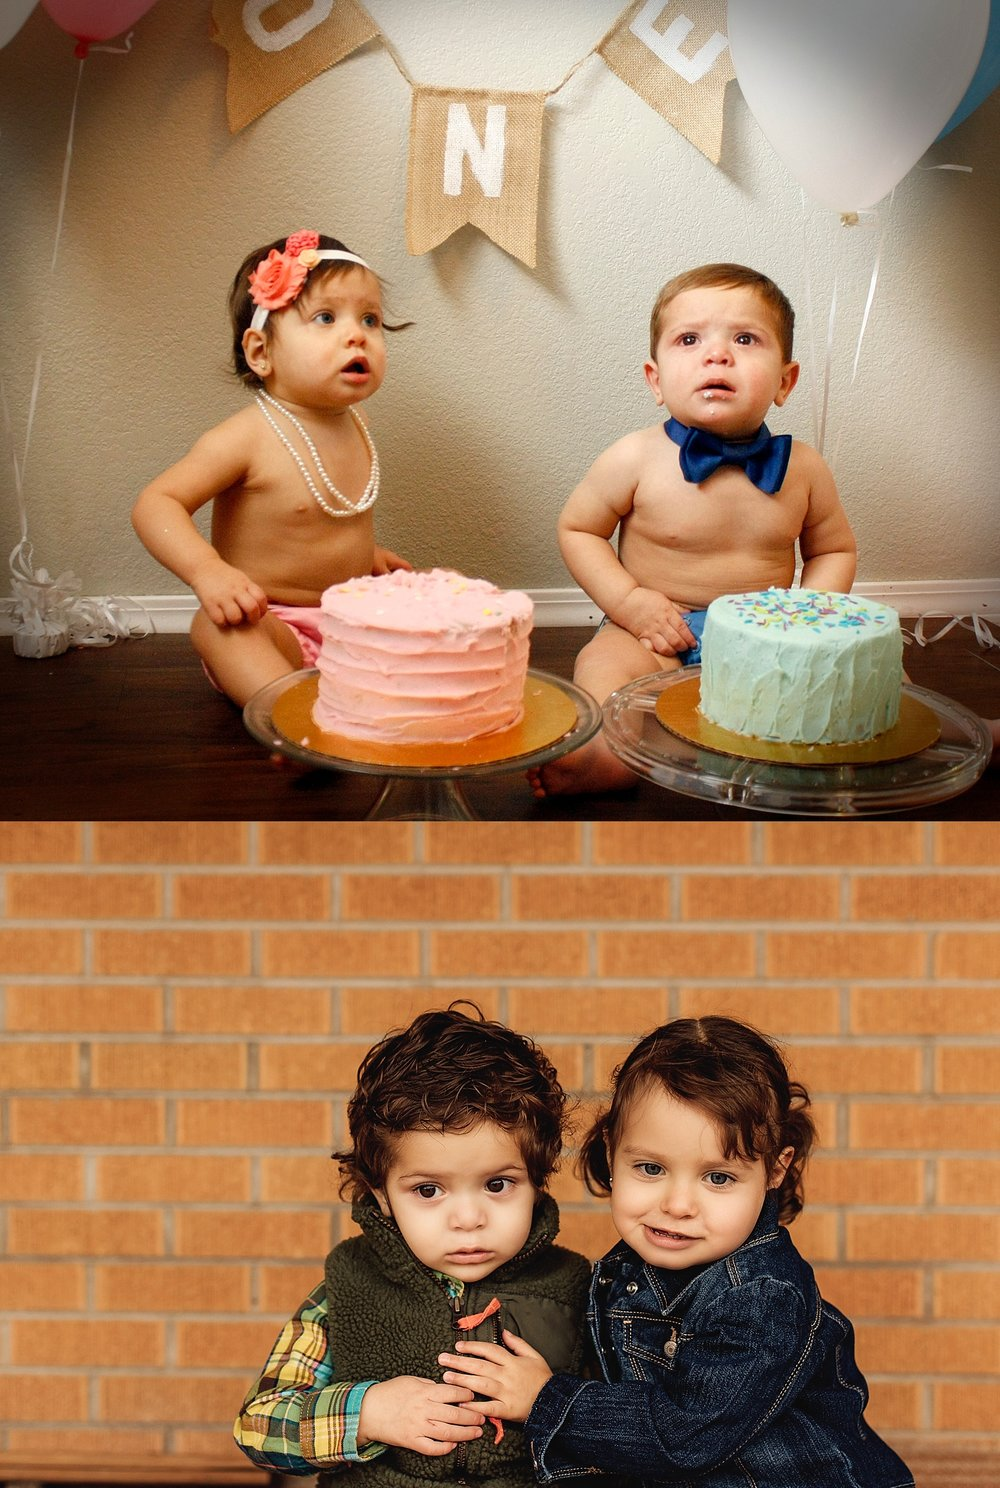 Above: One year ago - Mila and Liam's One year cake smash  Below: Today - Liam and Mila